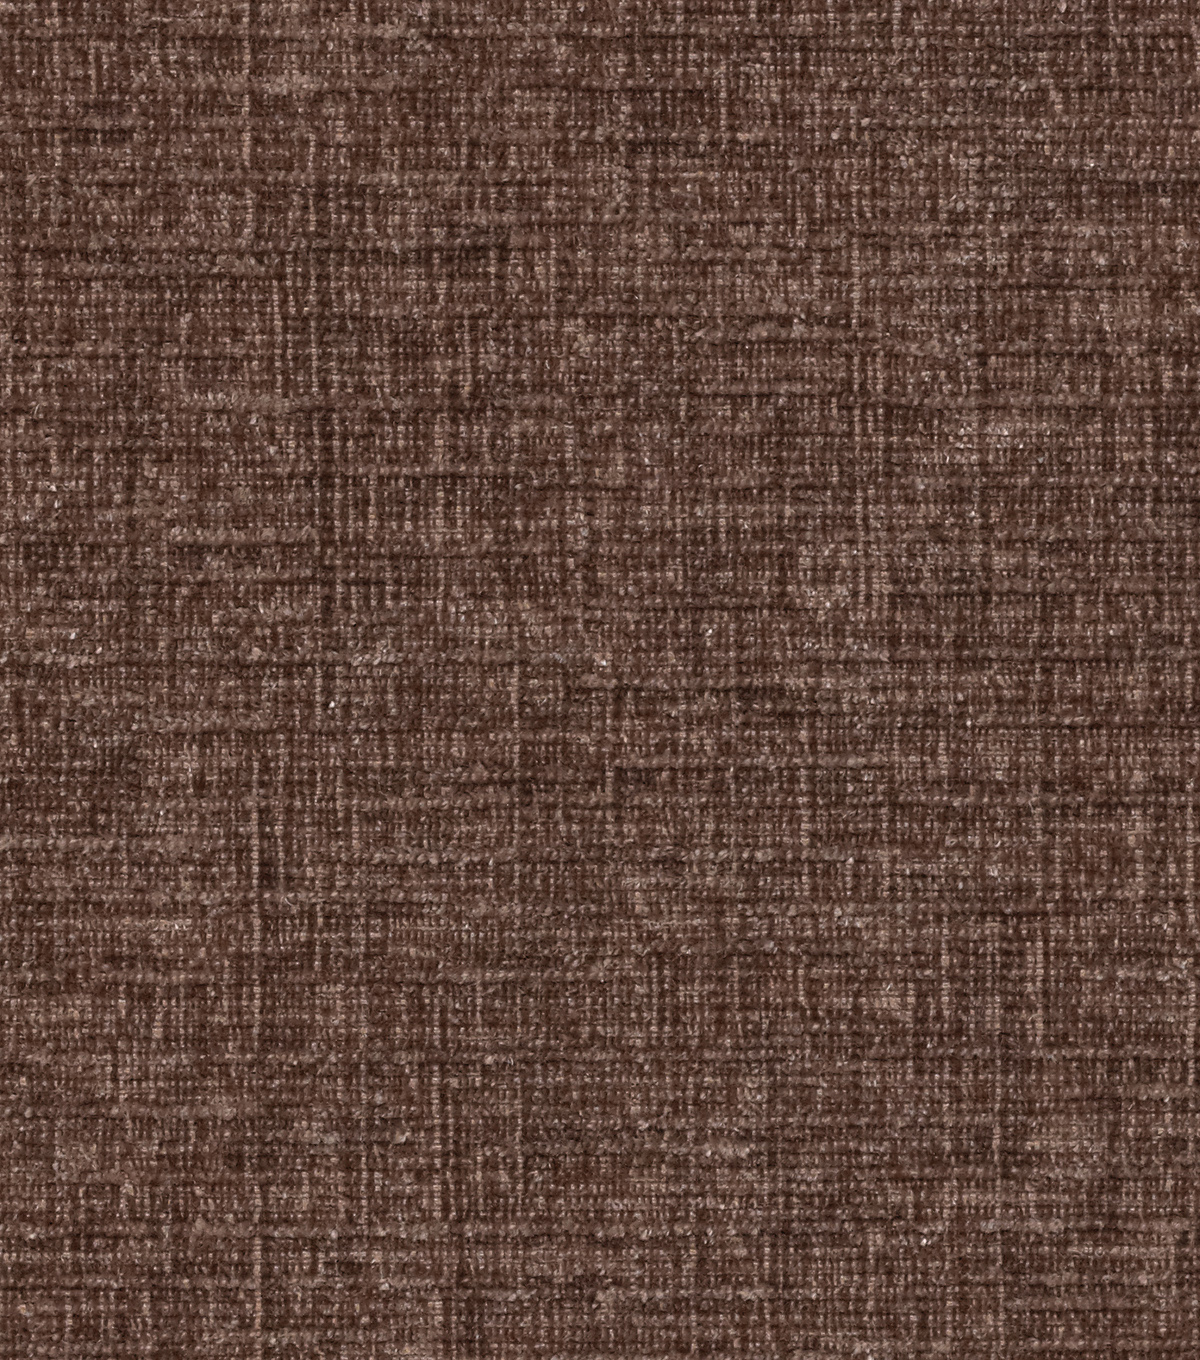 Clooney Sepia Swatch